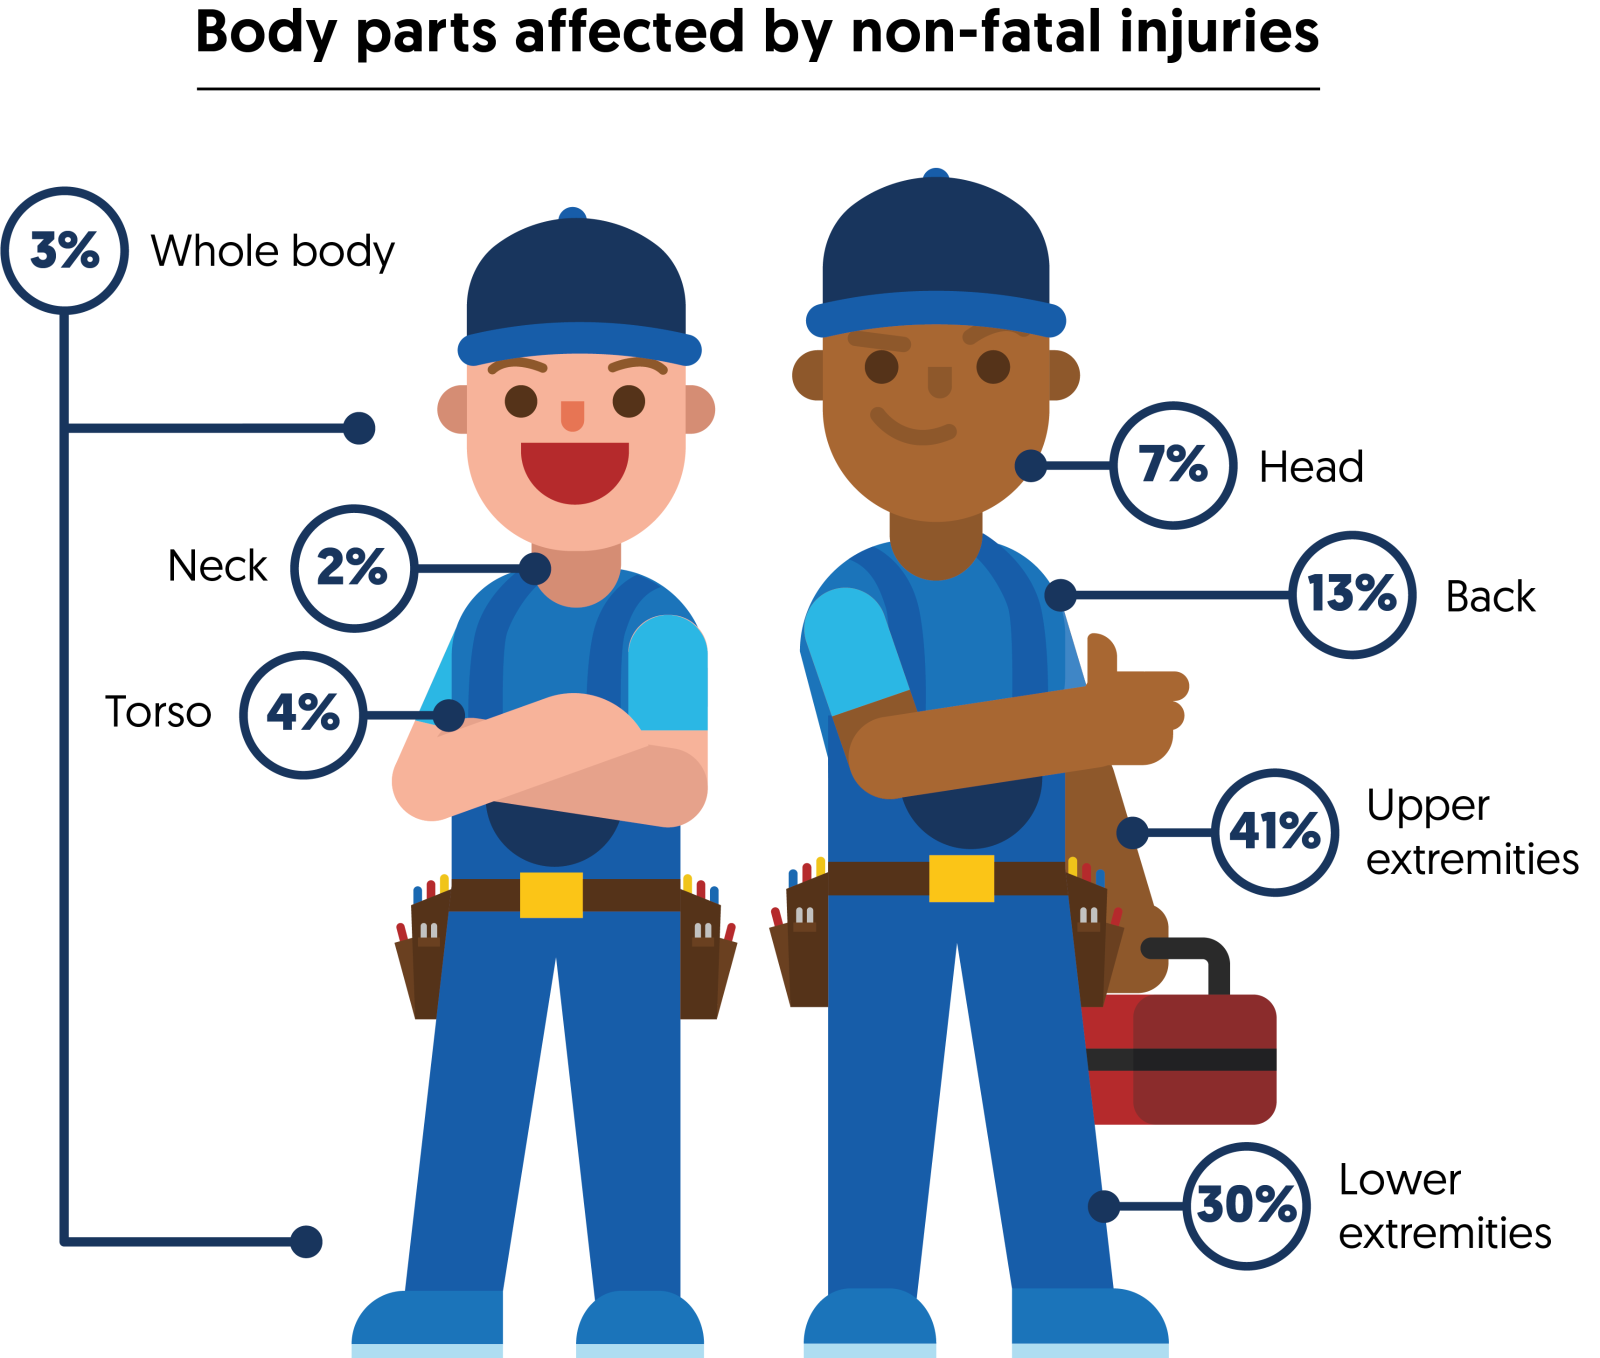 Most affected body parts